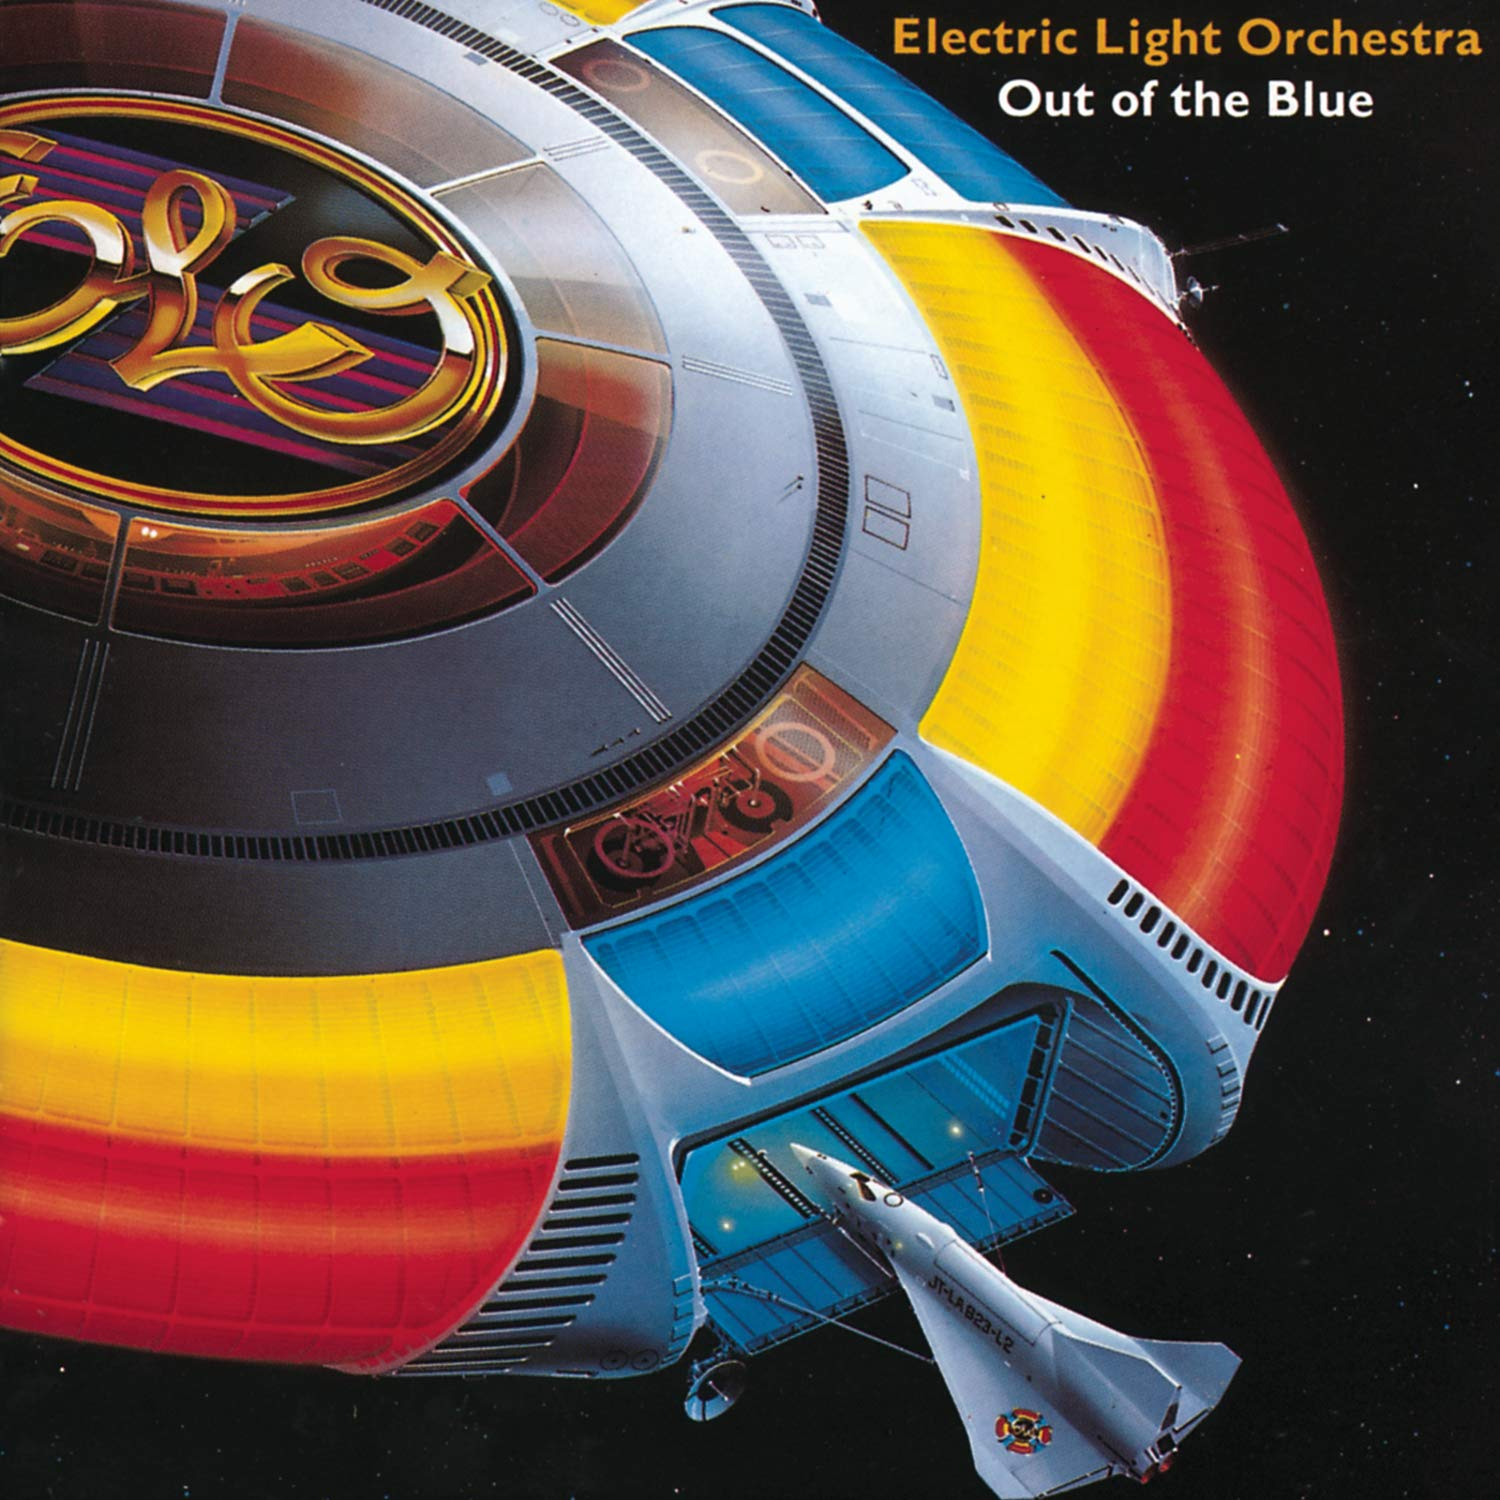 Electric Light Orchestra: Mr. Blue Sky